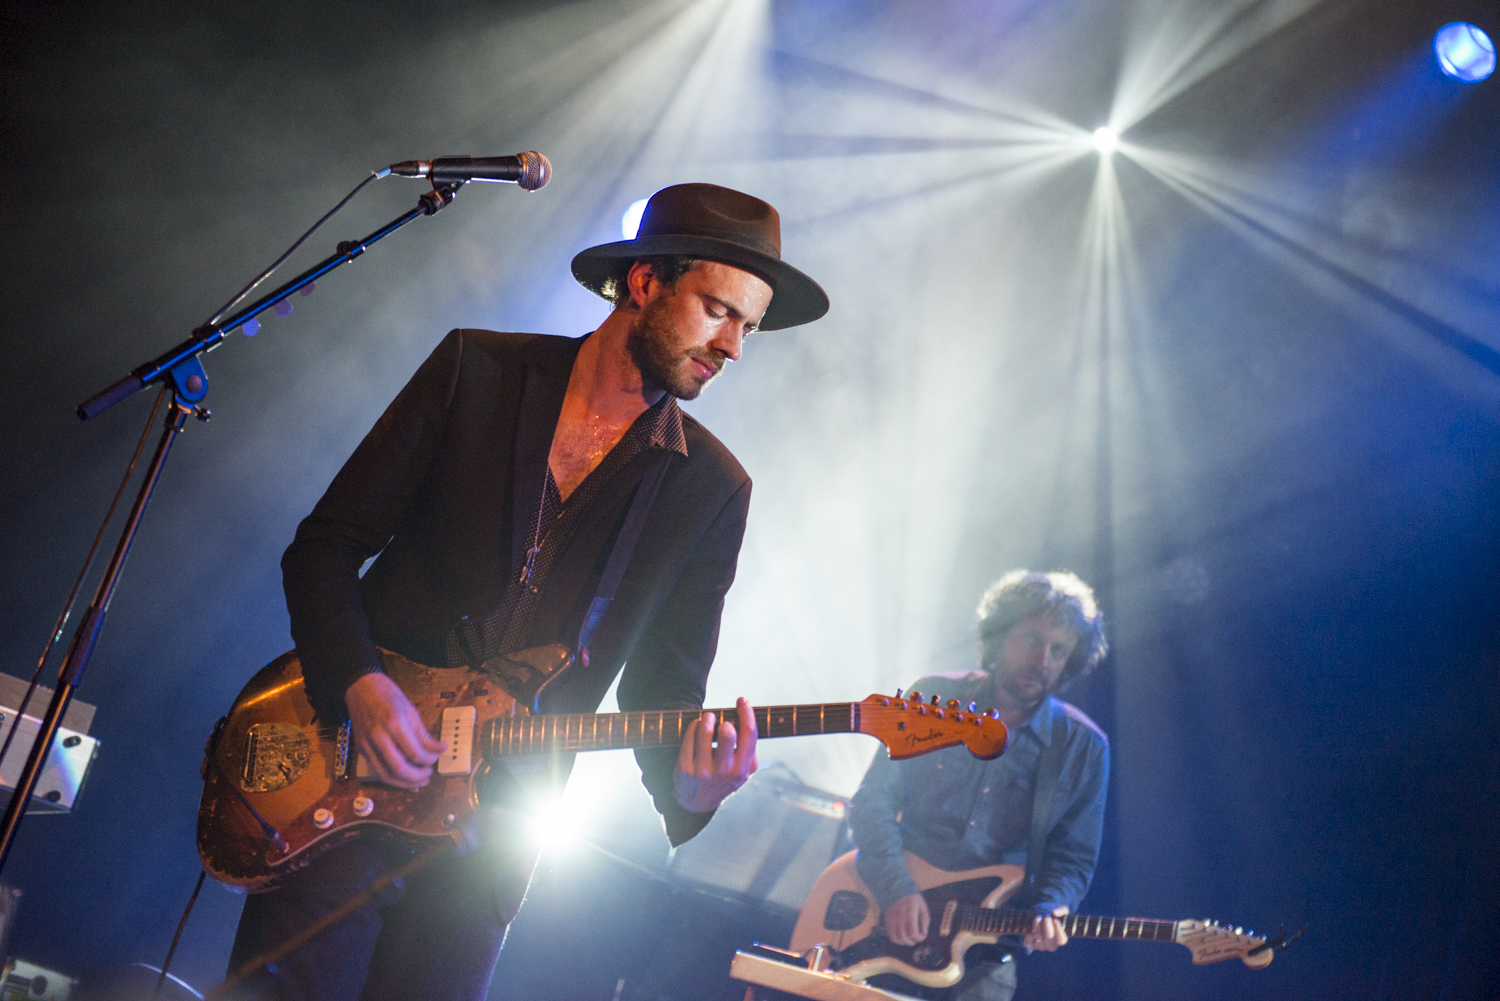 The Veils @ Botanique 2016 (Nick De Baerdemaeker)